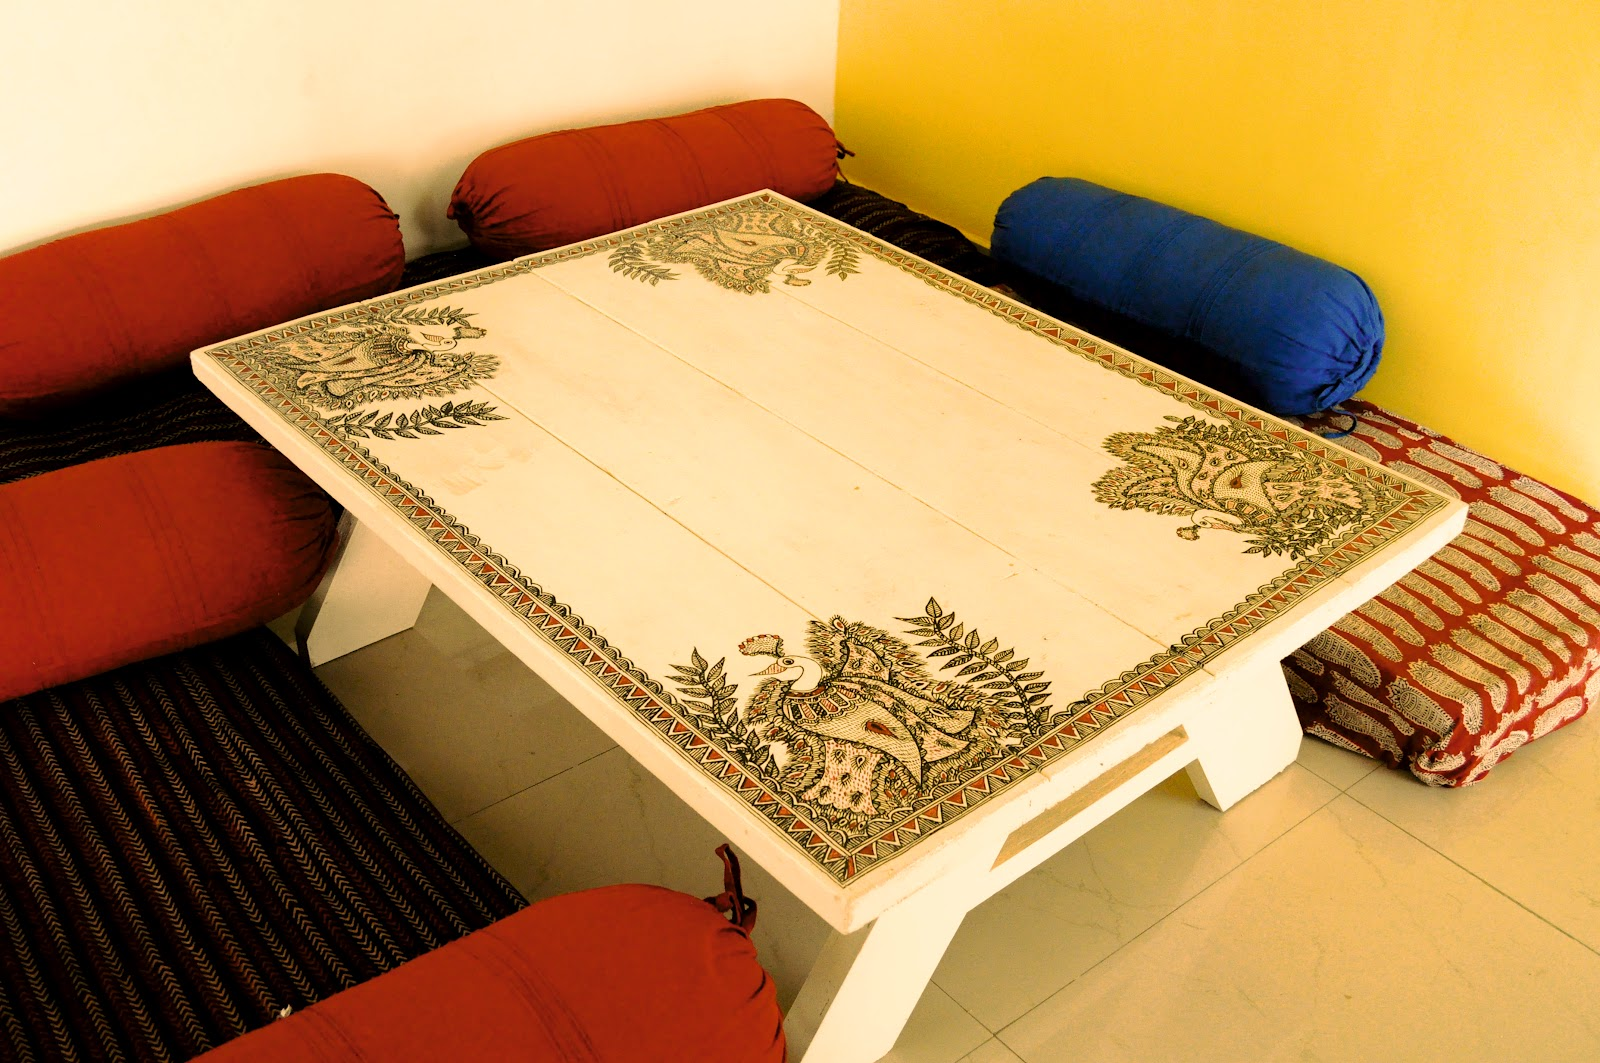 craft canvas brings traditional art right into your home the ahmedabad based craft canvas is giving us all a chance to bring expert artisans into our homes and do up a wall or two with their artwork how cool